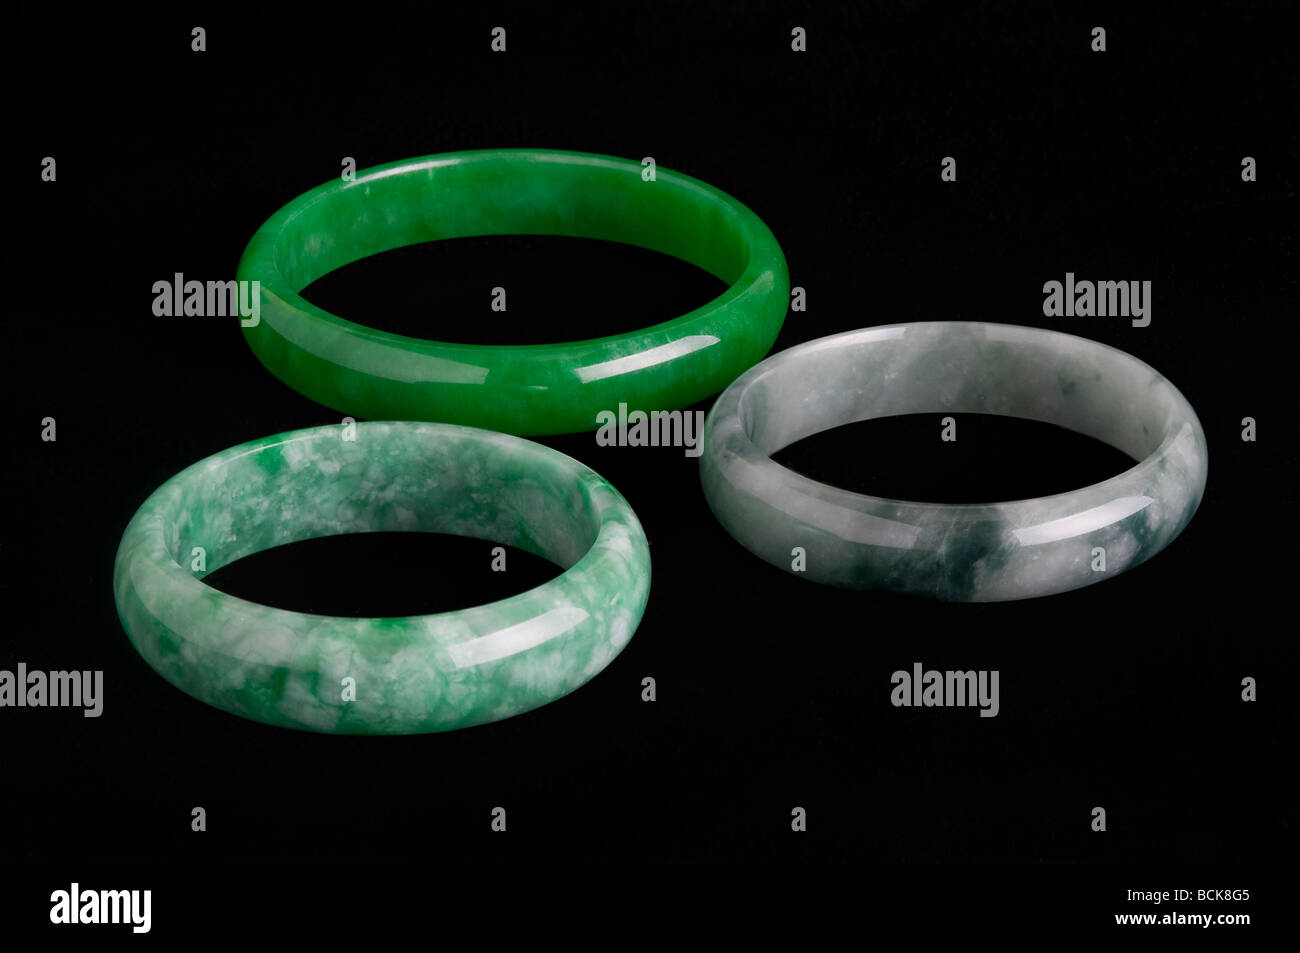 Oriental Jade 'Jadeite' assorted bangles on black background - Stock Image